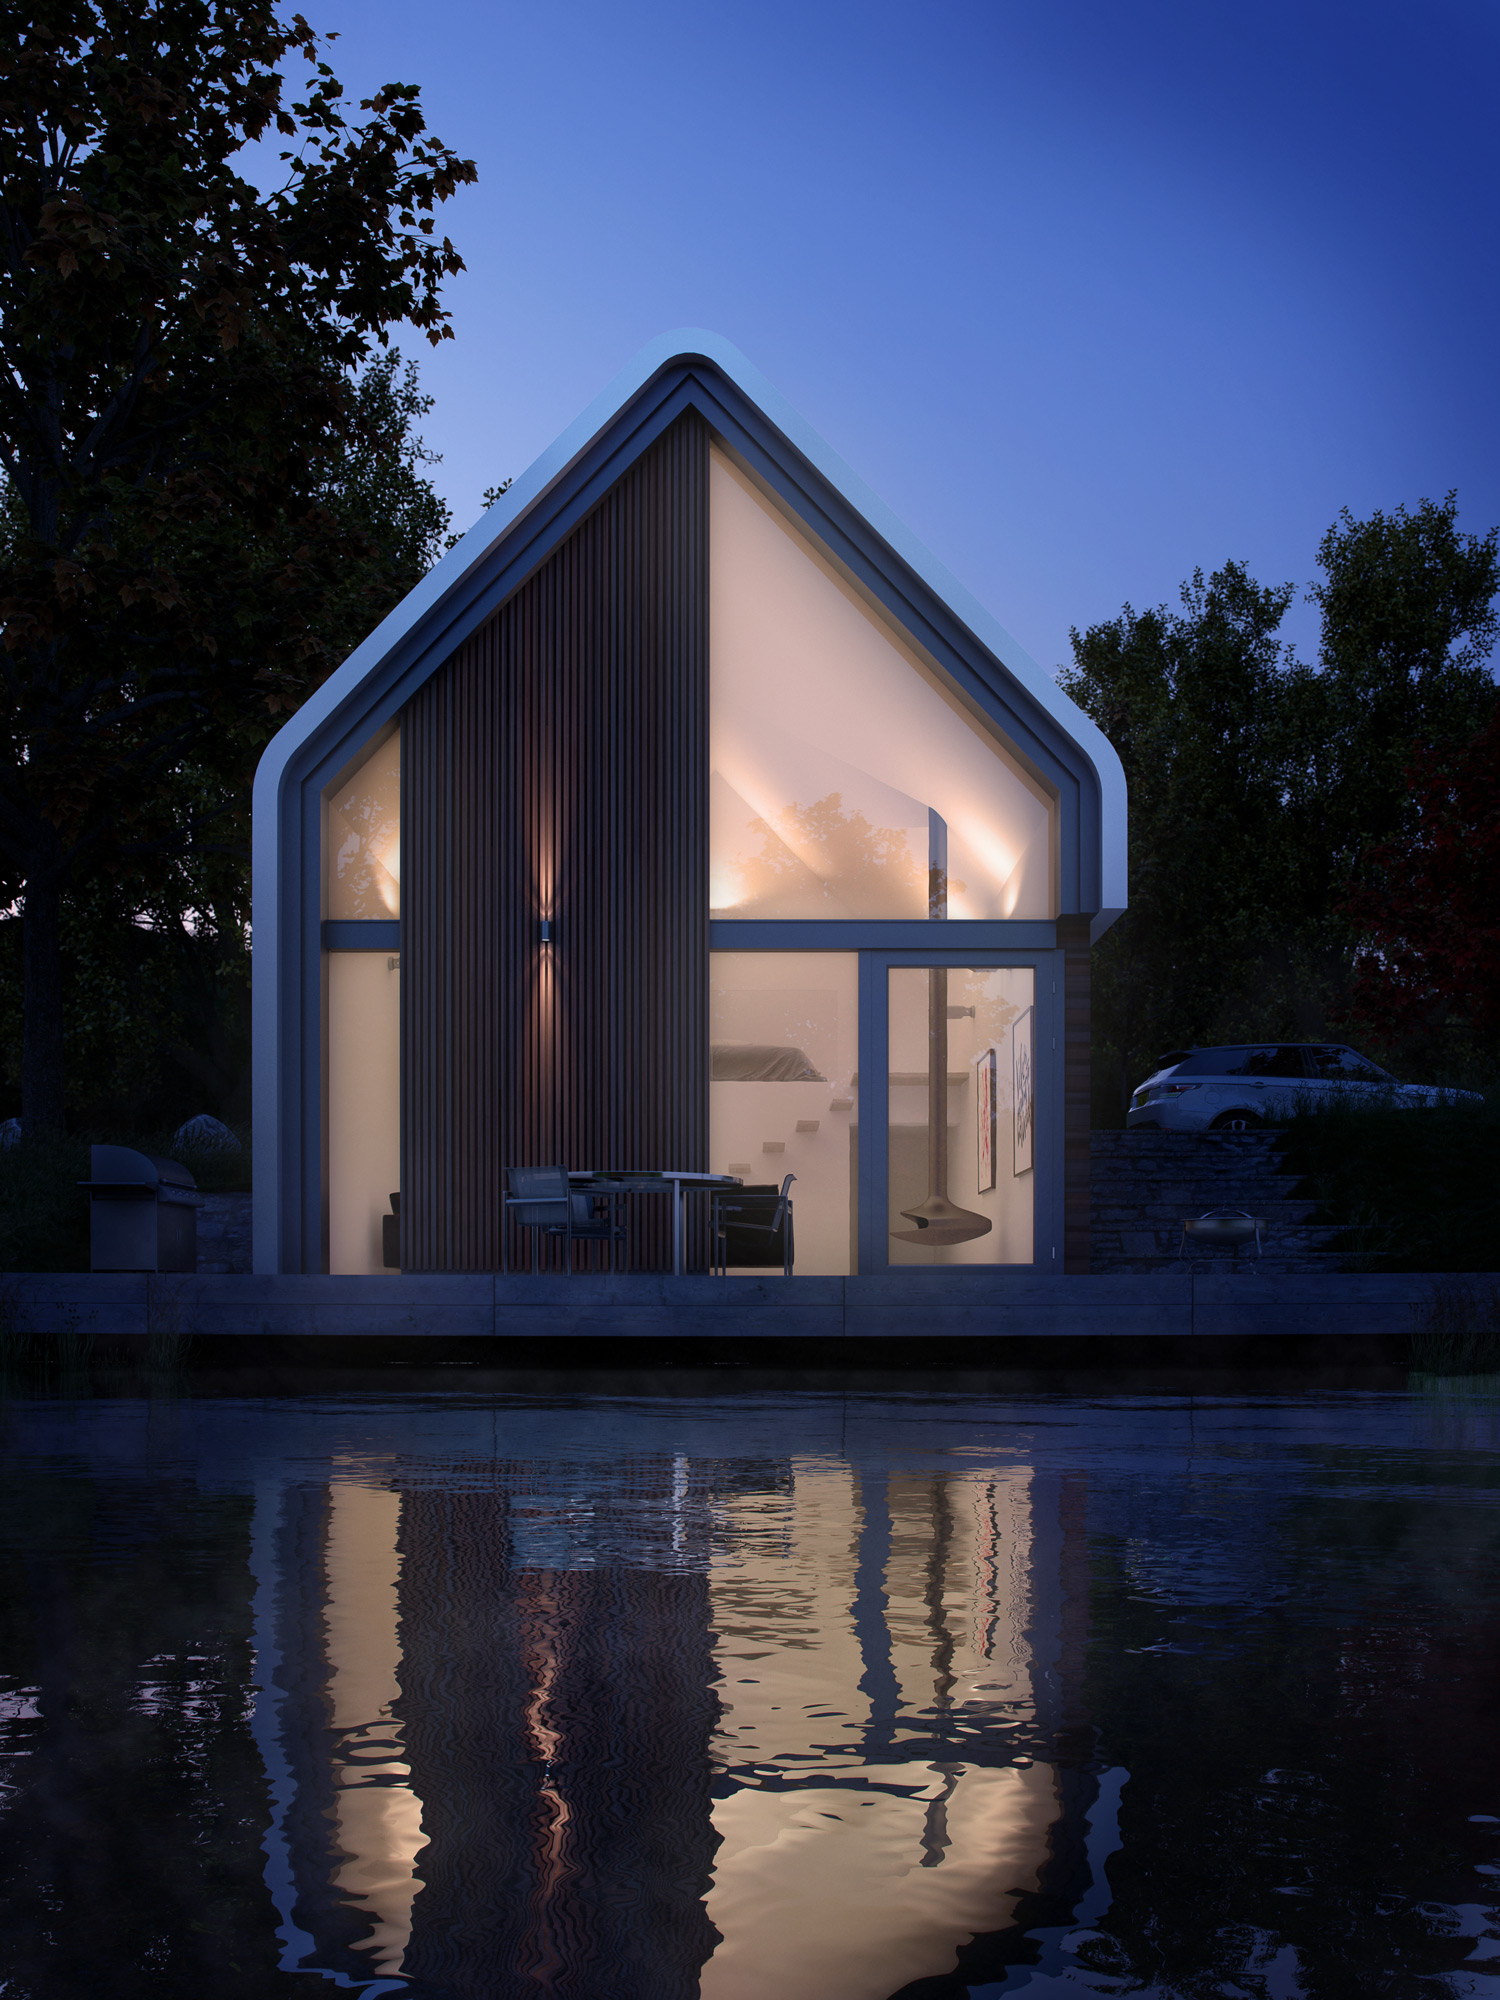 Lake house, Dusk, Night, Architectural Visualisation, CGI